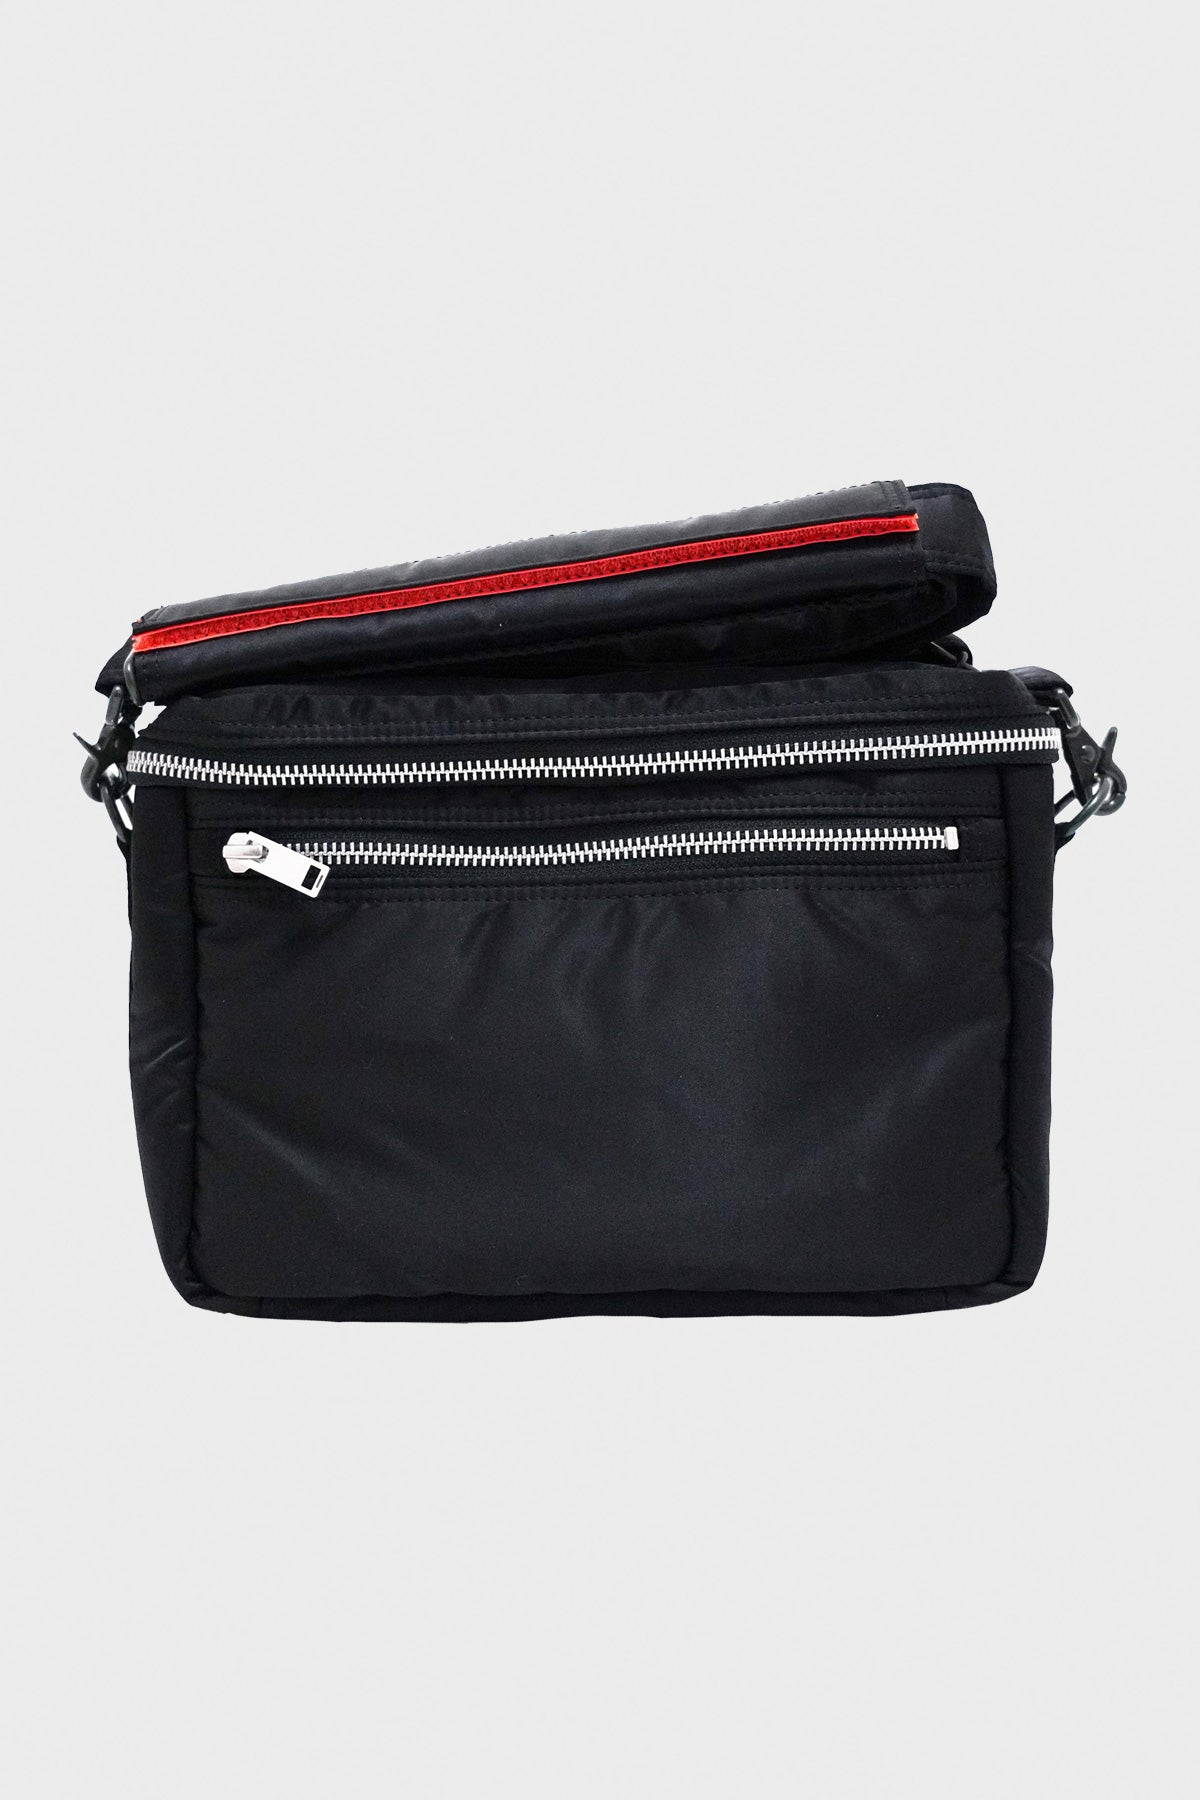 Porter Yoshida and Co - Camera Bag - Black - Canoe Club